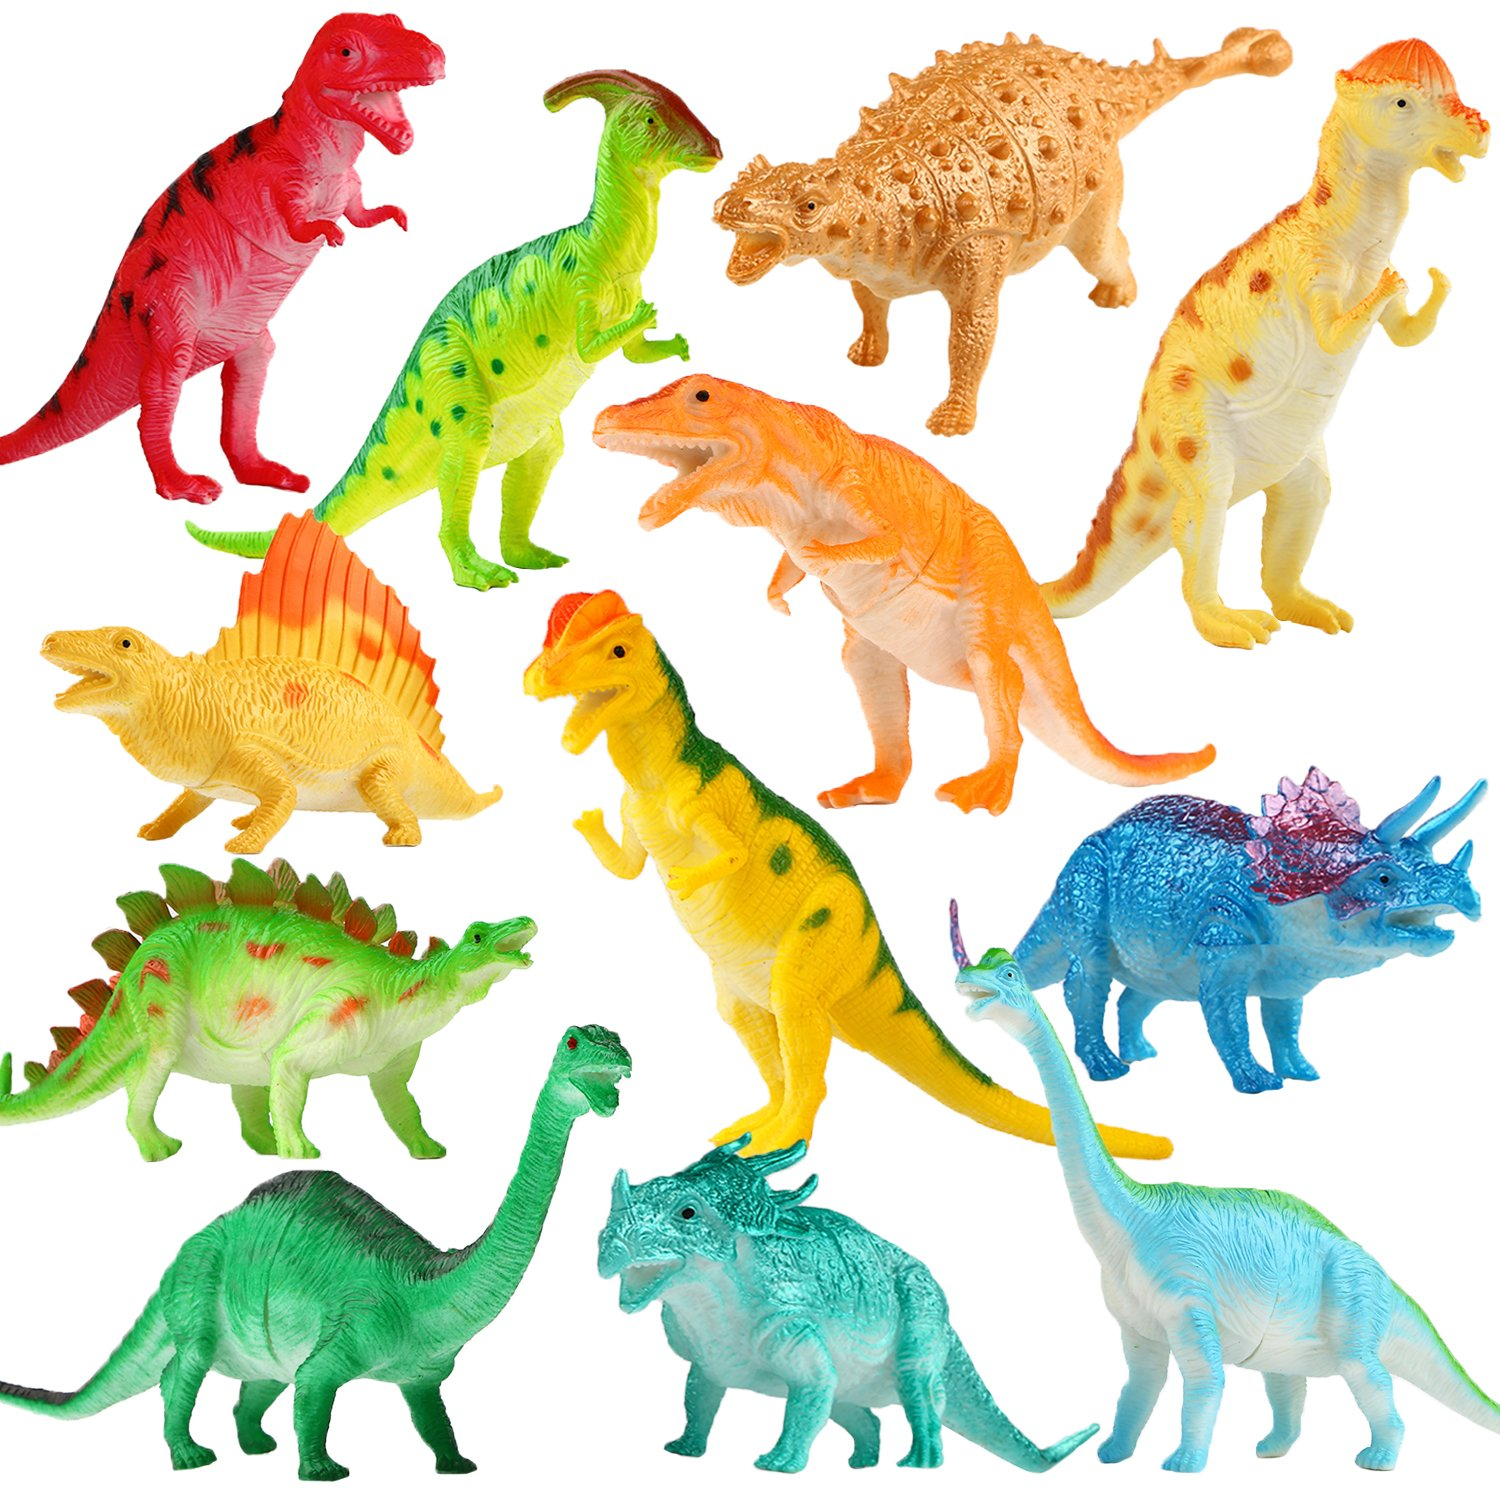 Dinosaur Figure, 7 Inch Jumbo Dinosaur Toy Playset(12 pack), Safe Material Assorted Realistic Dinosaur,Yeonha Toys Vinyl Plastic Dino Dinosaur Set Party Favors Toys For Kids Boys Toddler Educational